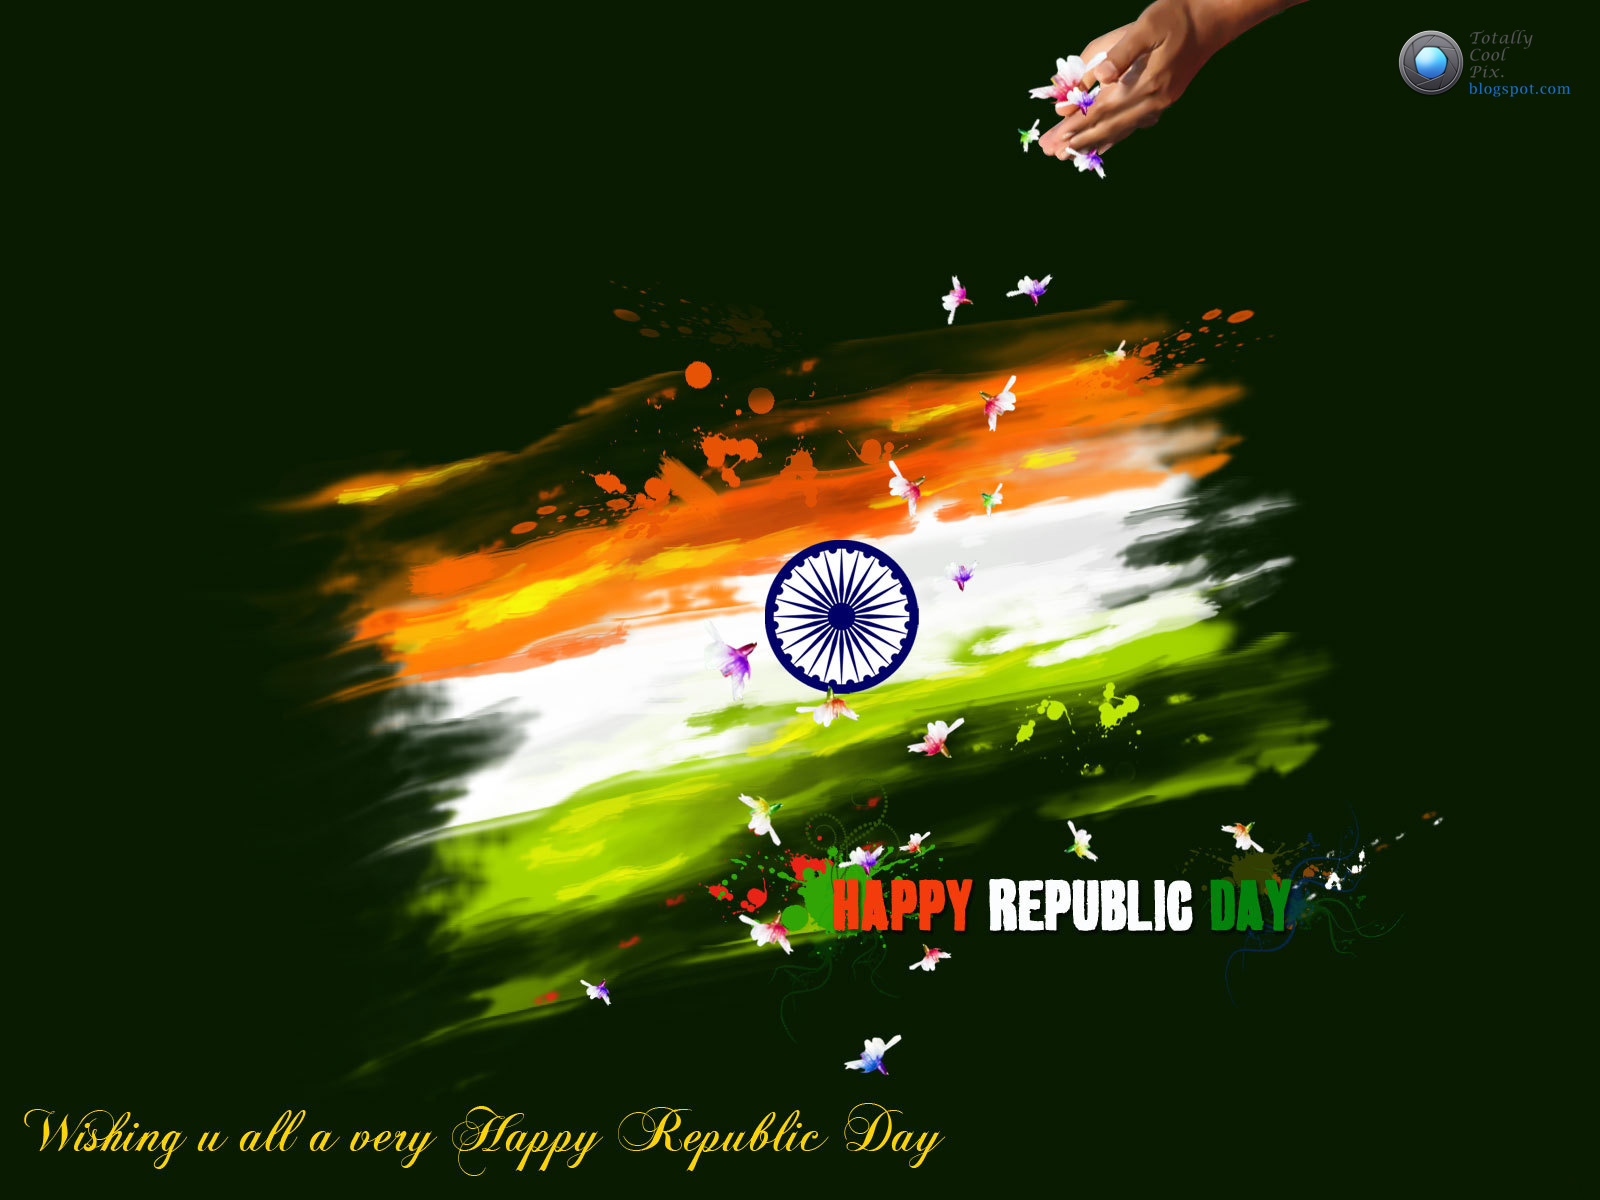 http://3.bp.blogspot.com/-sN30NQVU_mM/UCmwfBQDb6I/AAAAAAAACXg/9THPTE-CMdY/s1600/Independance-Day-india-15-August-greeting-card-and-wallpaper-15.jpg